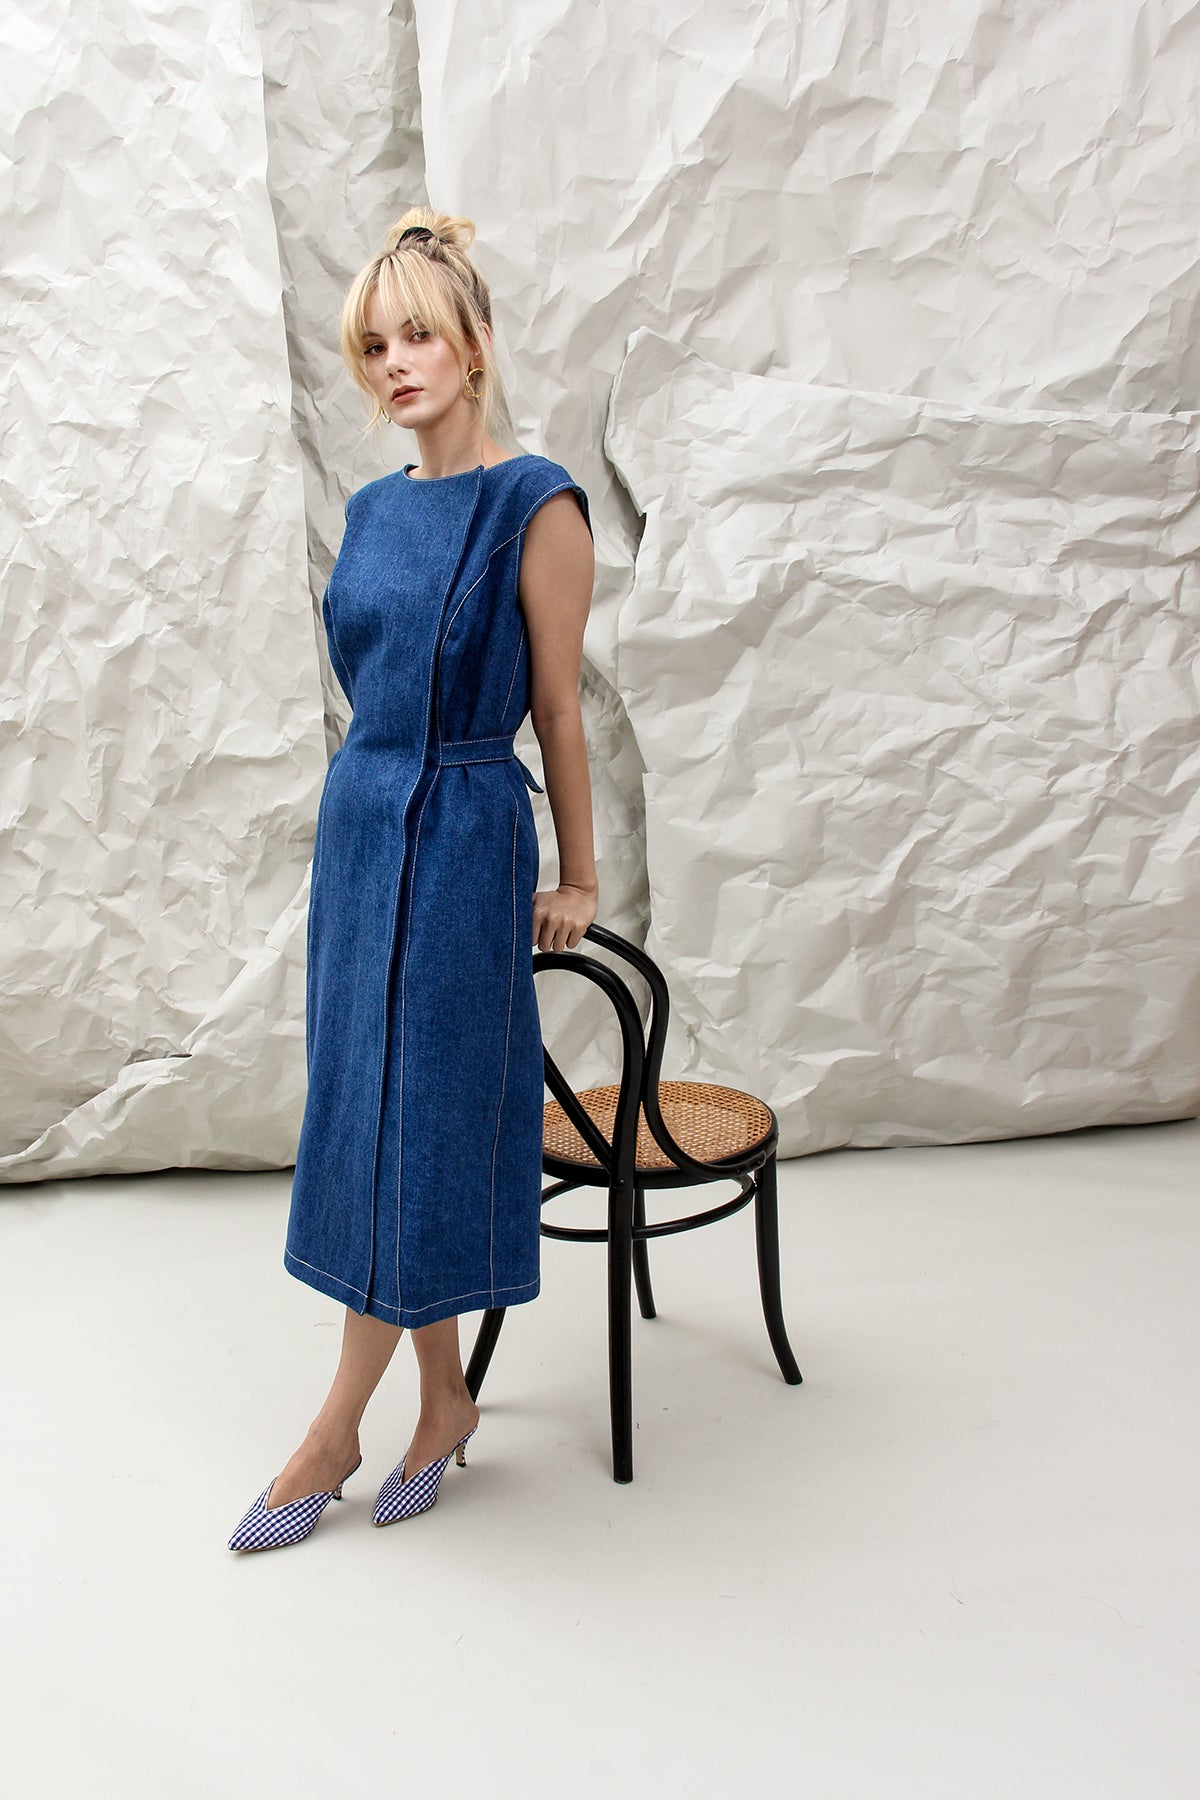 THE AUDREY DENIM DRESS